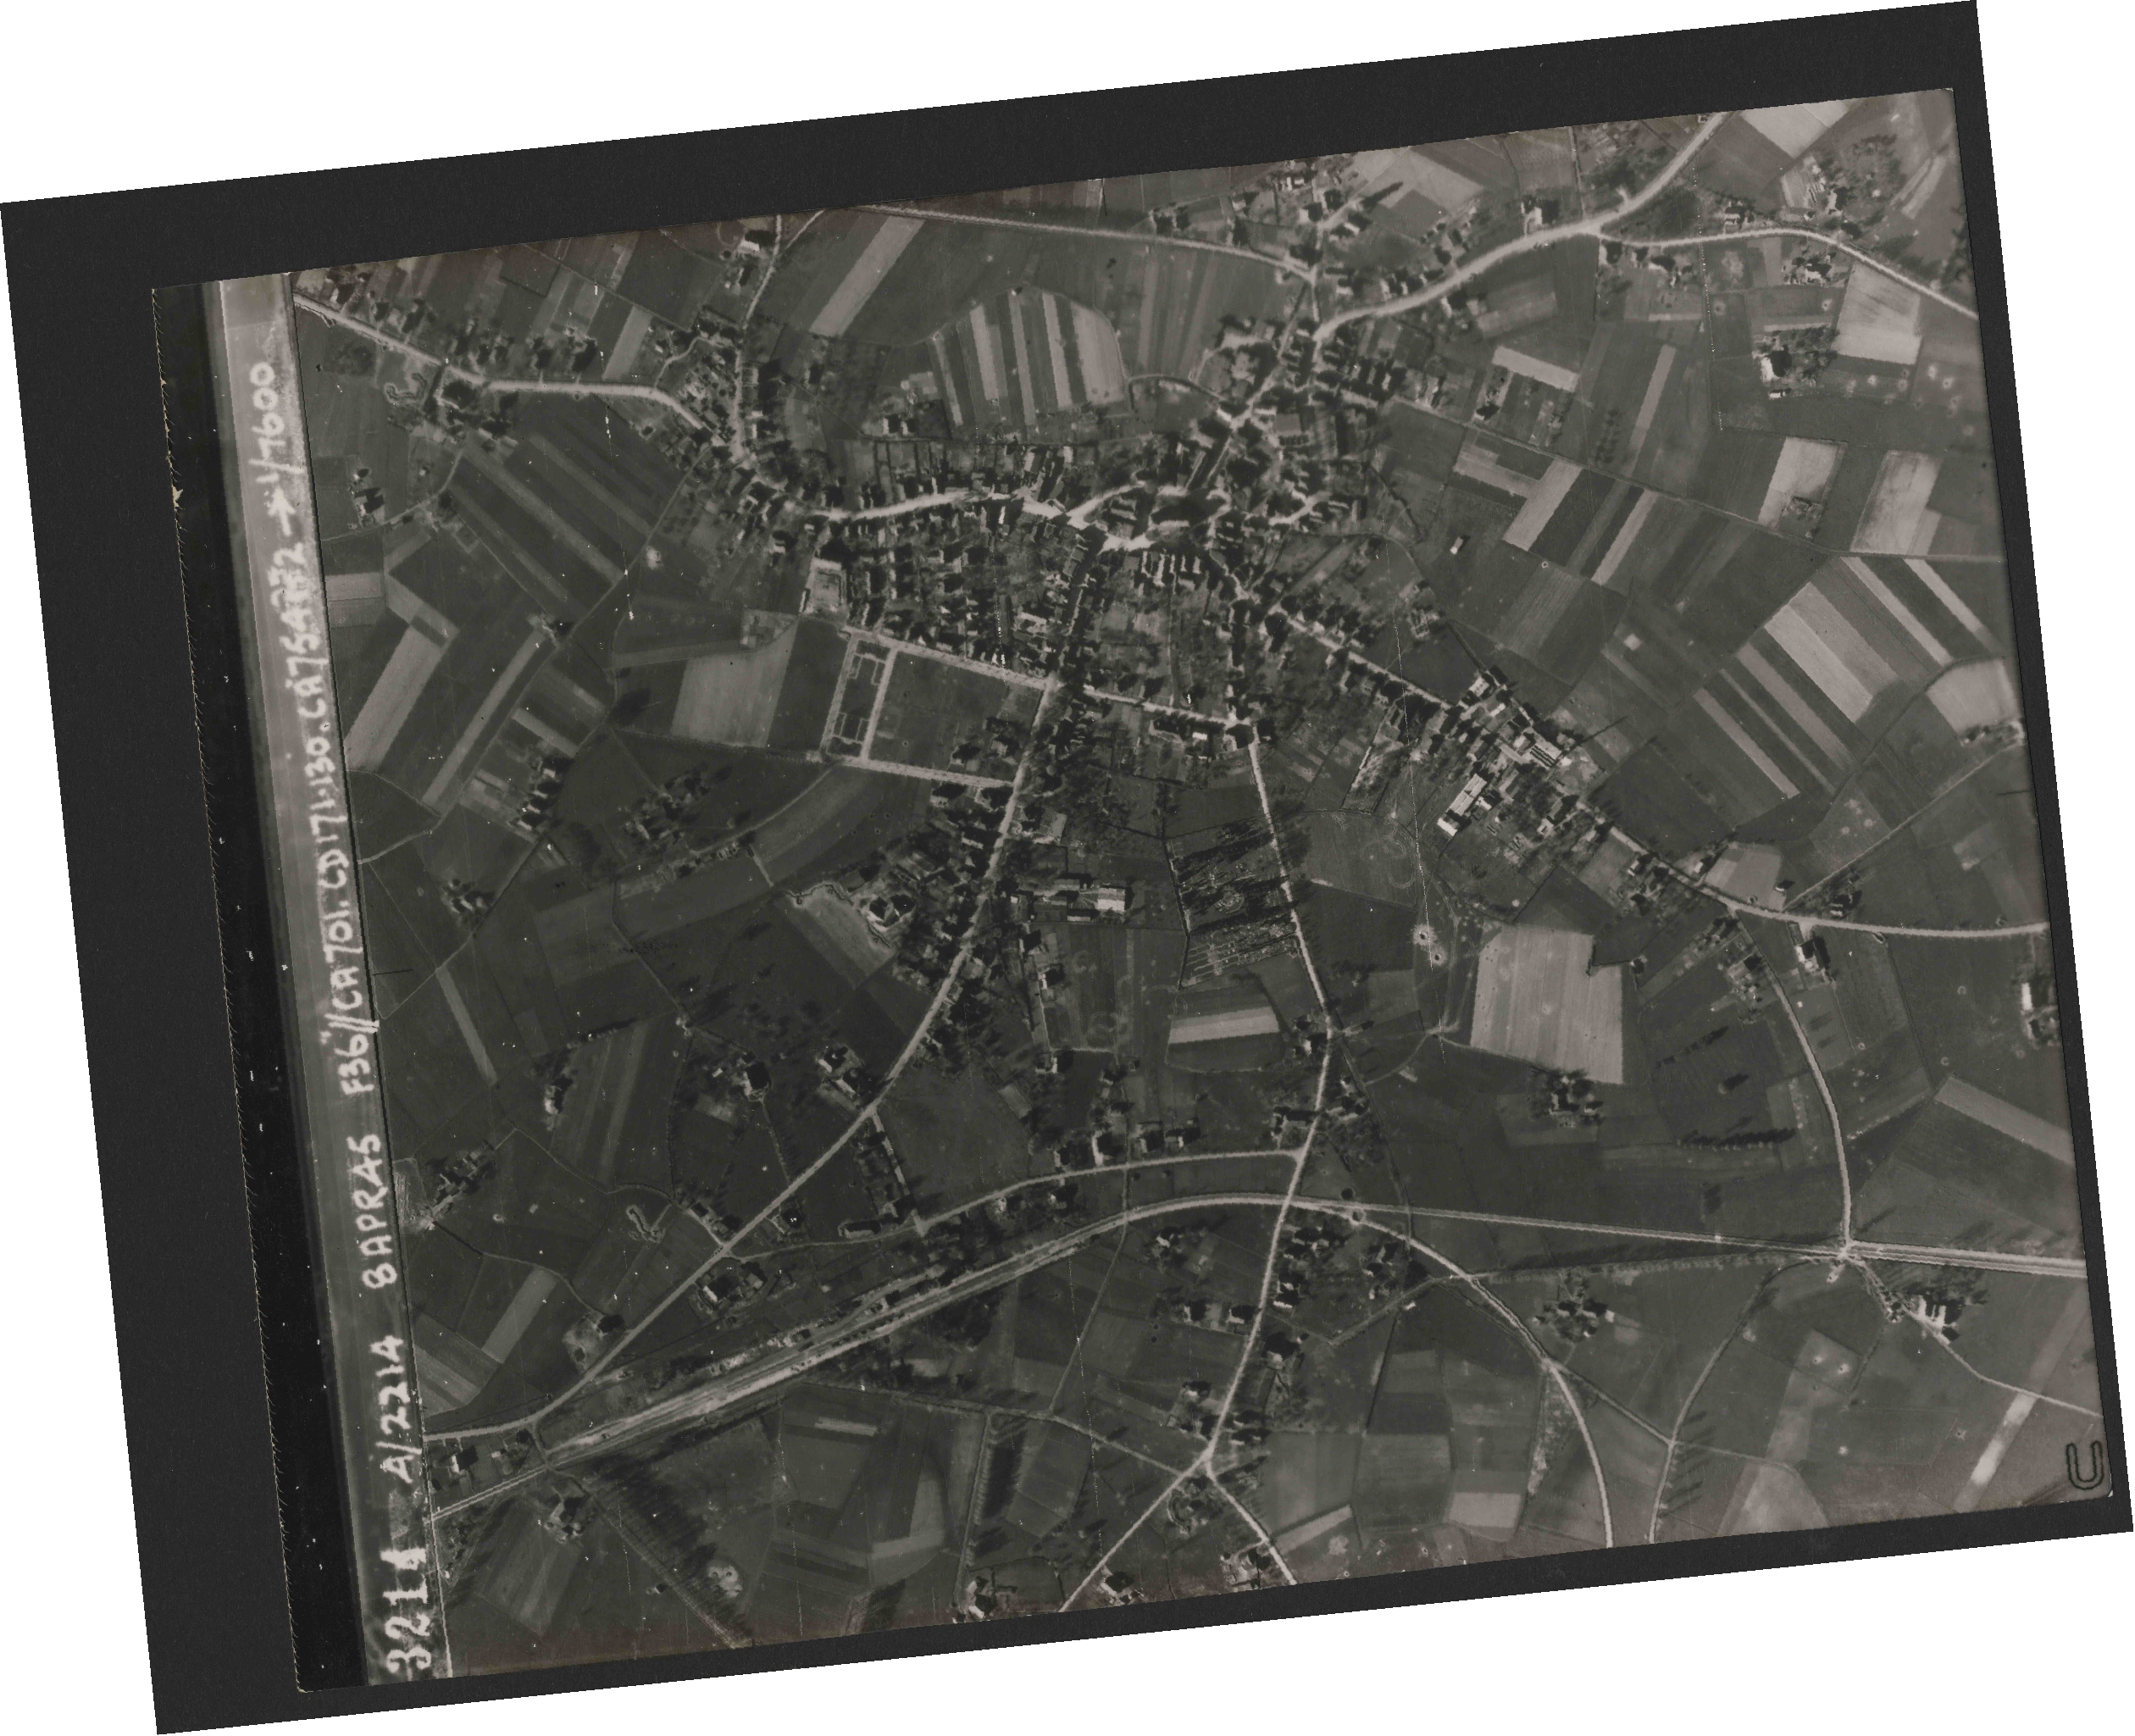 Collection RAF aerial photos 1940-1945 - flight 122, run 03, photo 3214